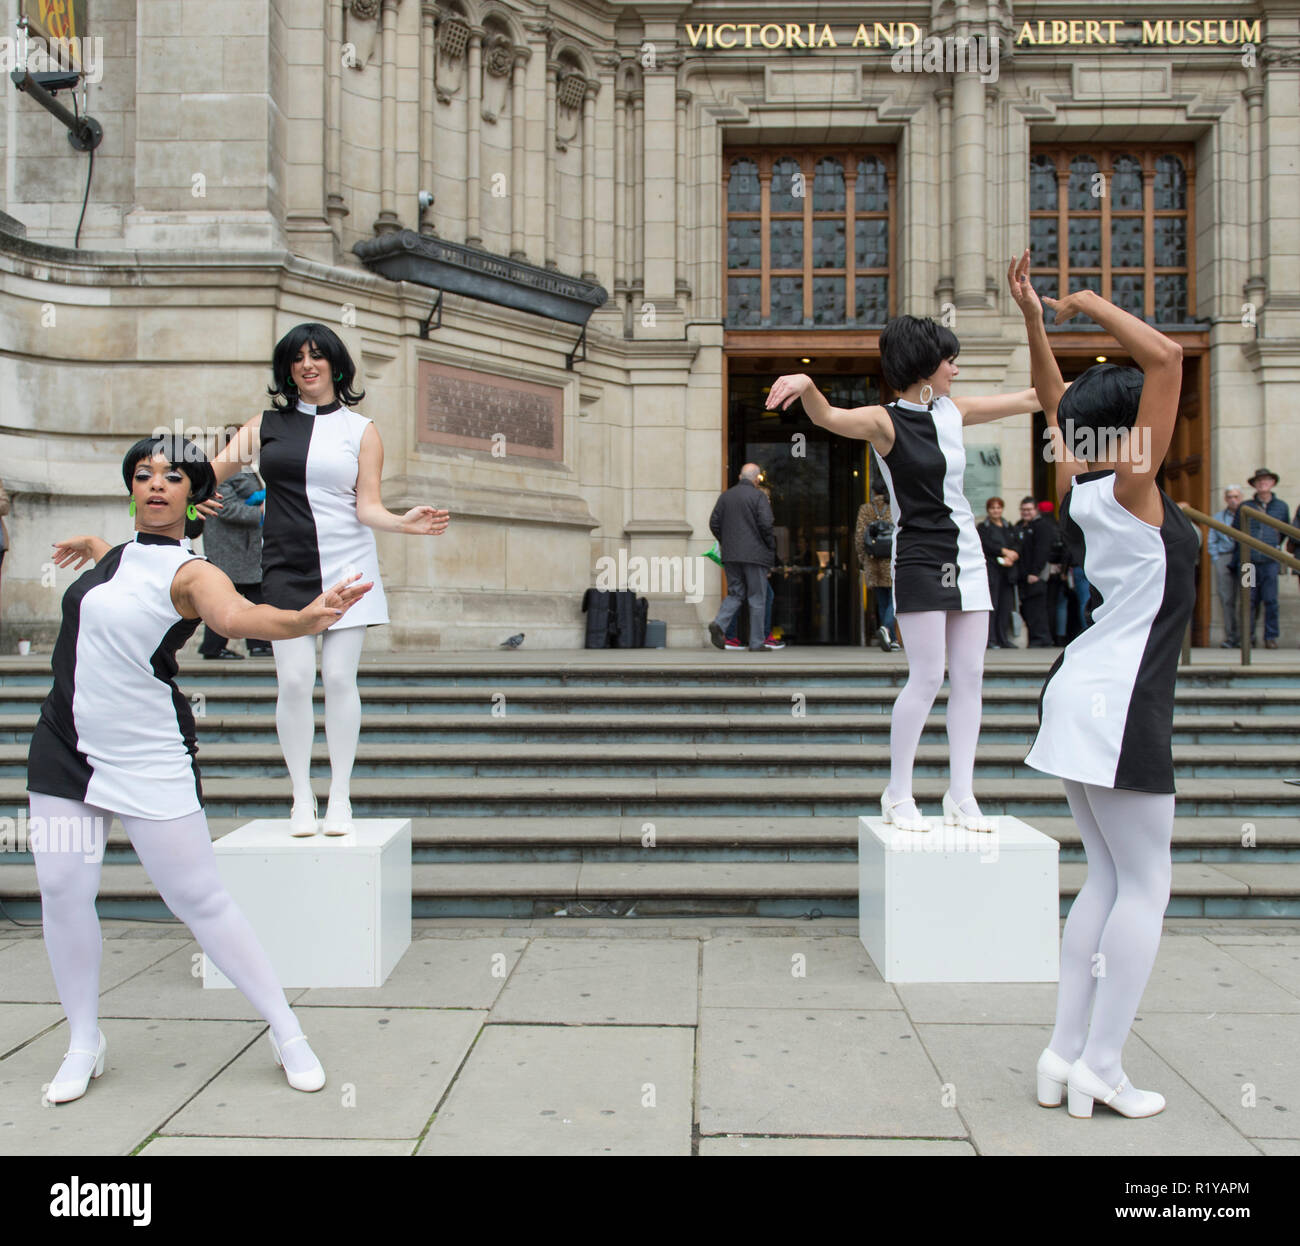 V&A, London, UK. 15 November, 2018. Meyer Dancers give a 60s Go-Go dance performance at the V&A entrance. The event marks the first time the public are able to purchase tickets for the Mary Quant exhibition opening at the V&A in 6 April 2019. Credit: Malcolm Park/Alamy Live News. - Stock Image